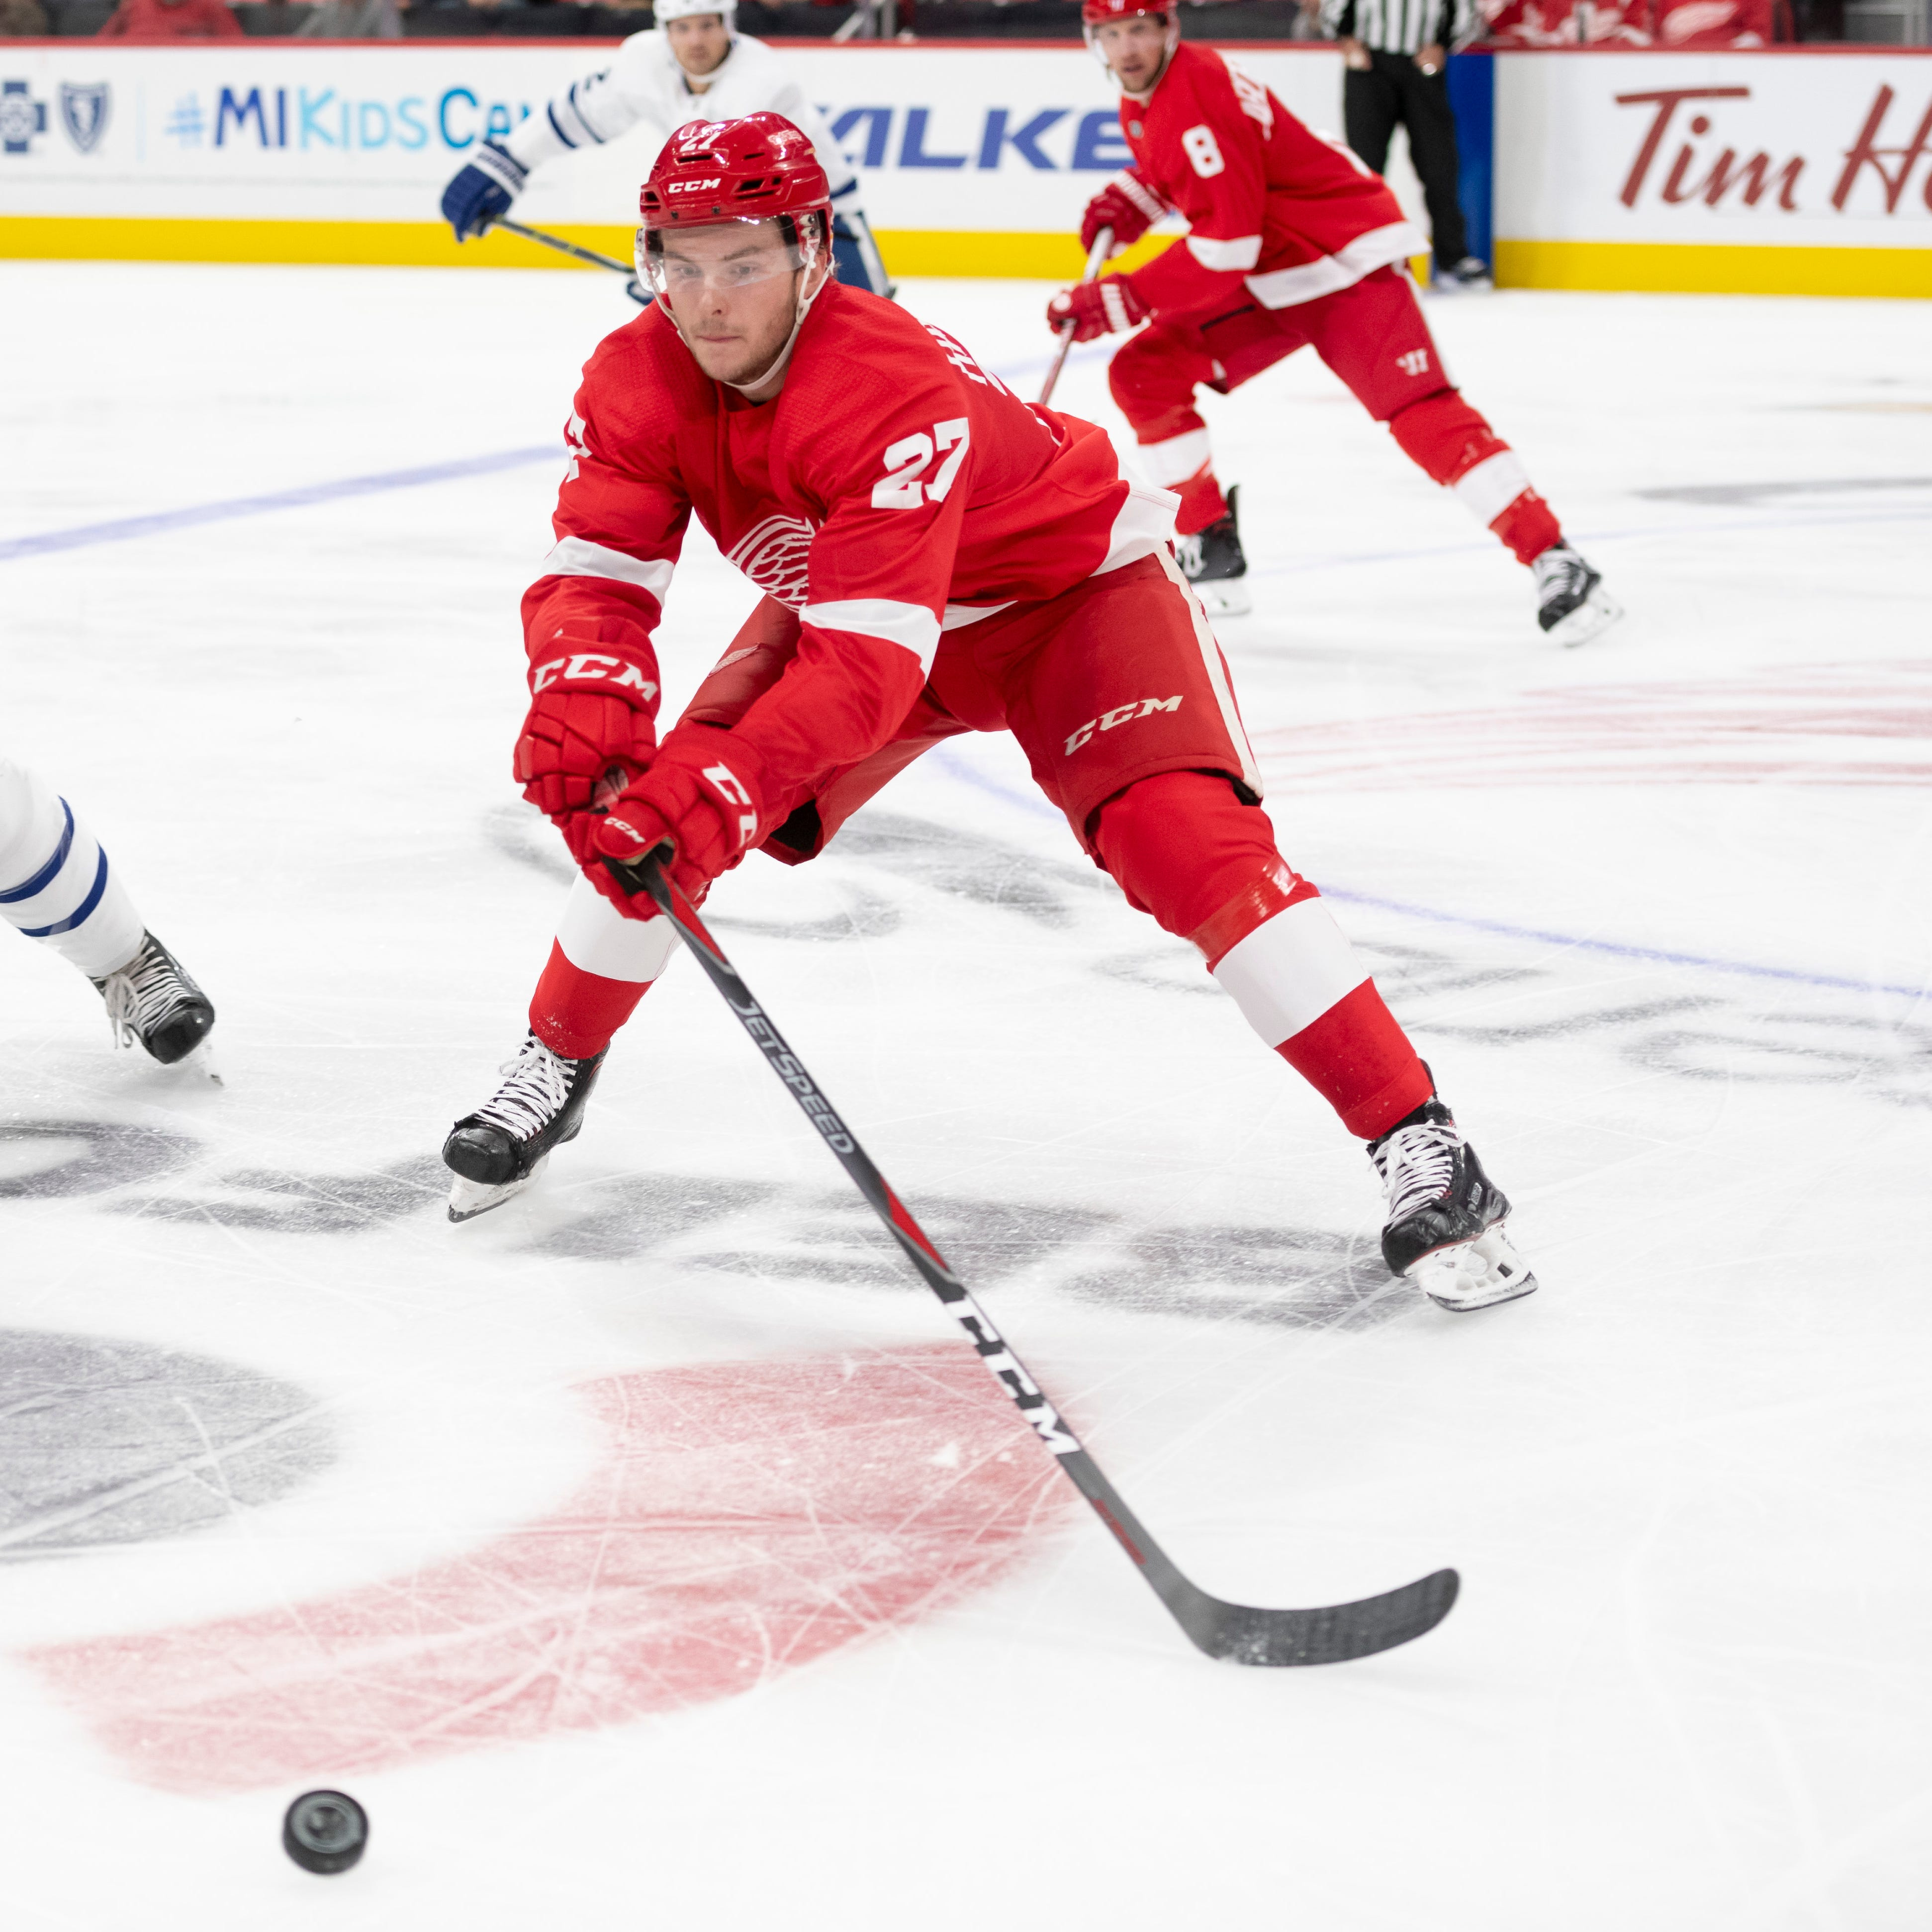 Rasmussen is odd man out in Red Wings' lineup shuffle